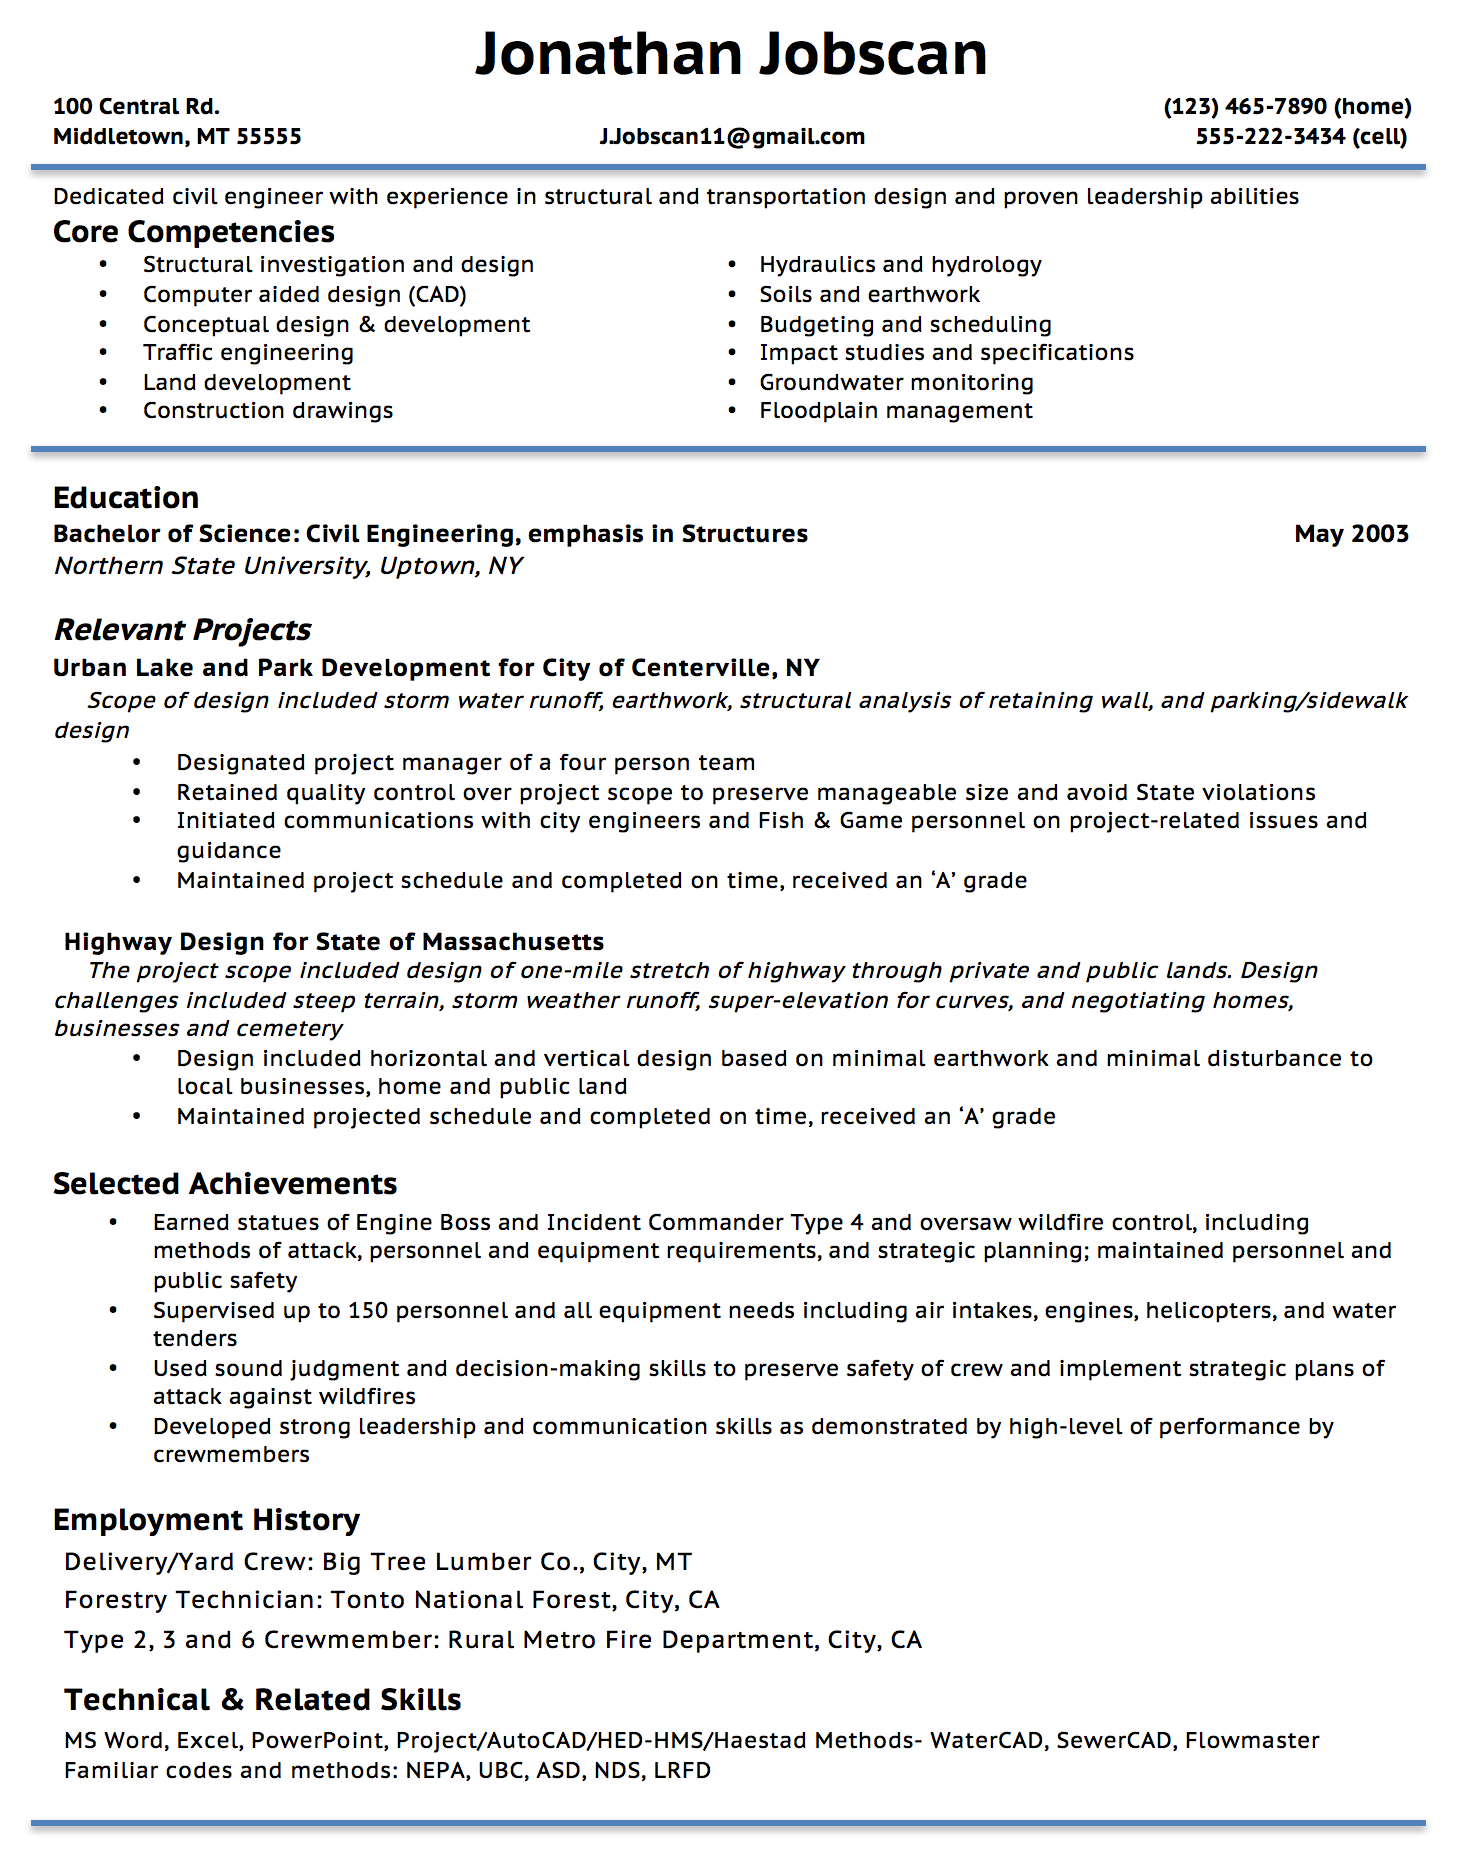 Opposenewapstandardsus  Marvelous Resume Writing Guide  Jobscan With Inspiring Example Of A Functional Resume Format With Comely Sample Cover Letters For Resumes Also Food Server Resume In Addition Build Your Own Resume And Vet Tech Resume As Well As Forklift Resume Additionally Good Resume Objective From Jobscanco With Opposenewapstandardsus  Inspiring Resume Writing Guide  Jobscan With Comely Example Of A Functional Resume Format And Marvelous Sample Cover Letters For Resumes Also Food Server Resume In Addition Build Your Own Resume From Jobscanco